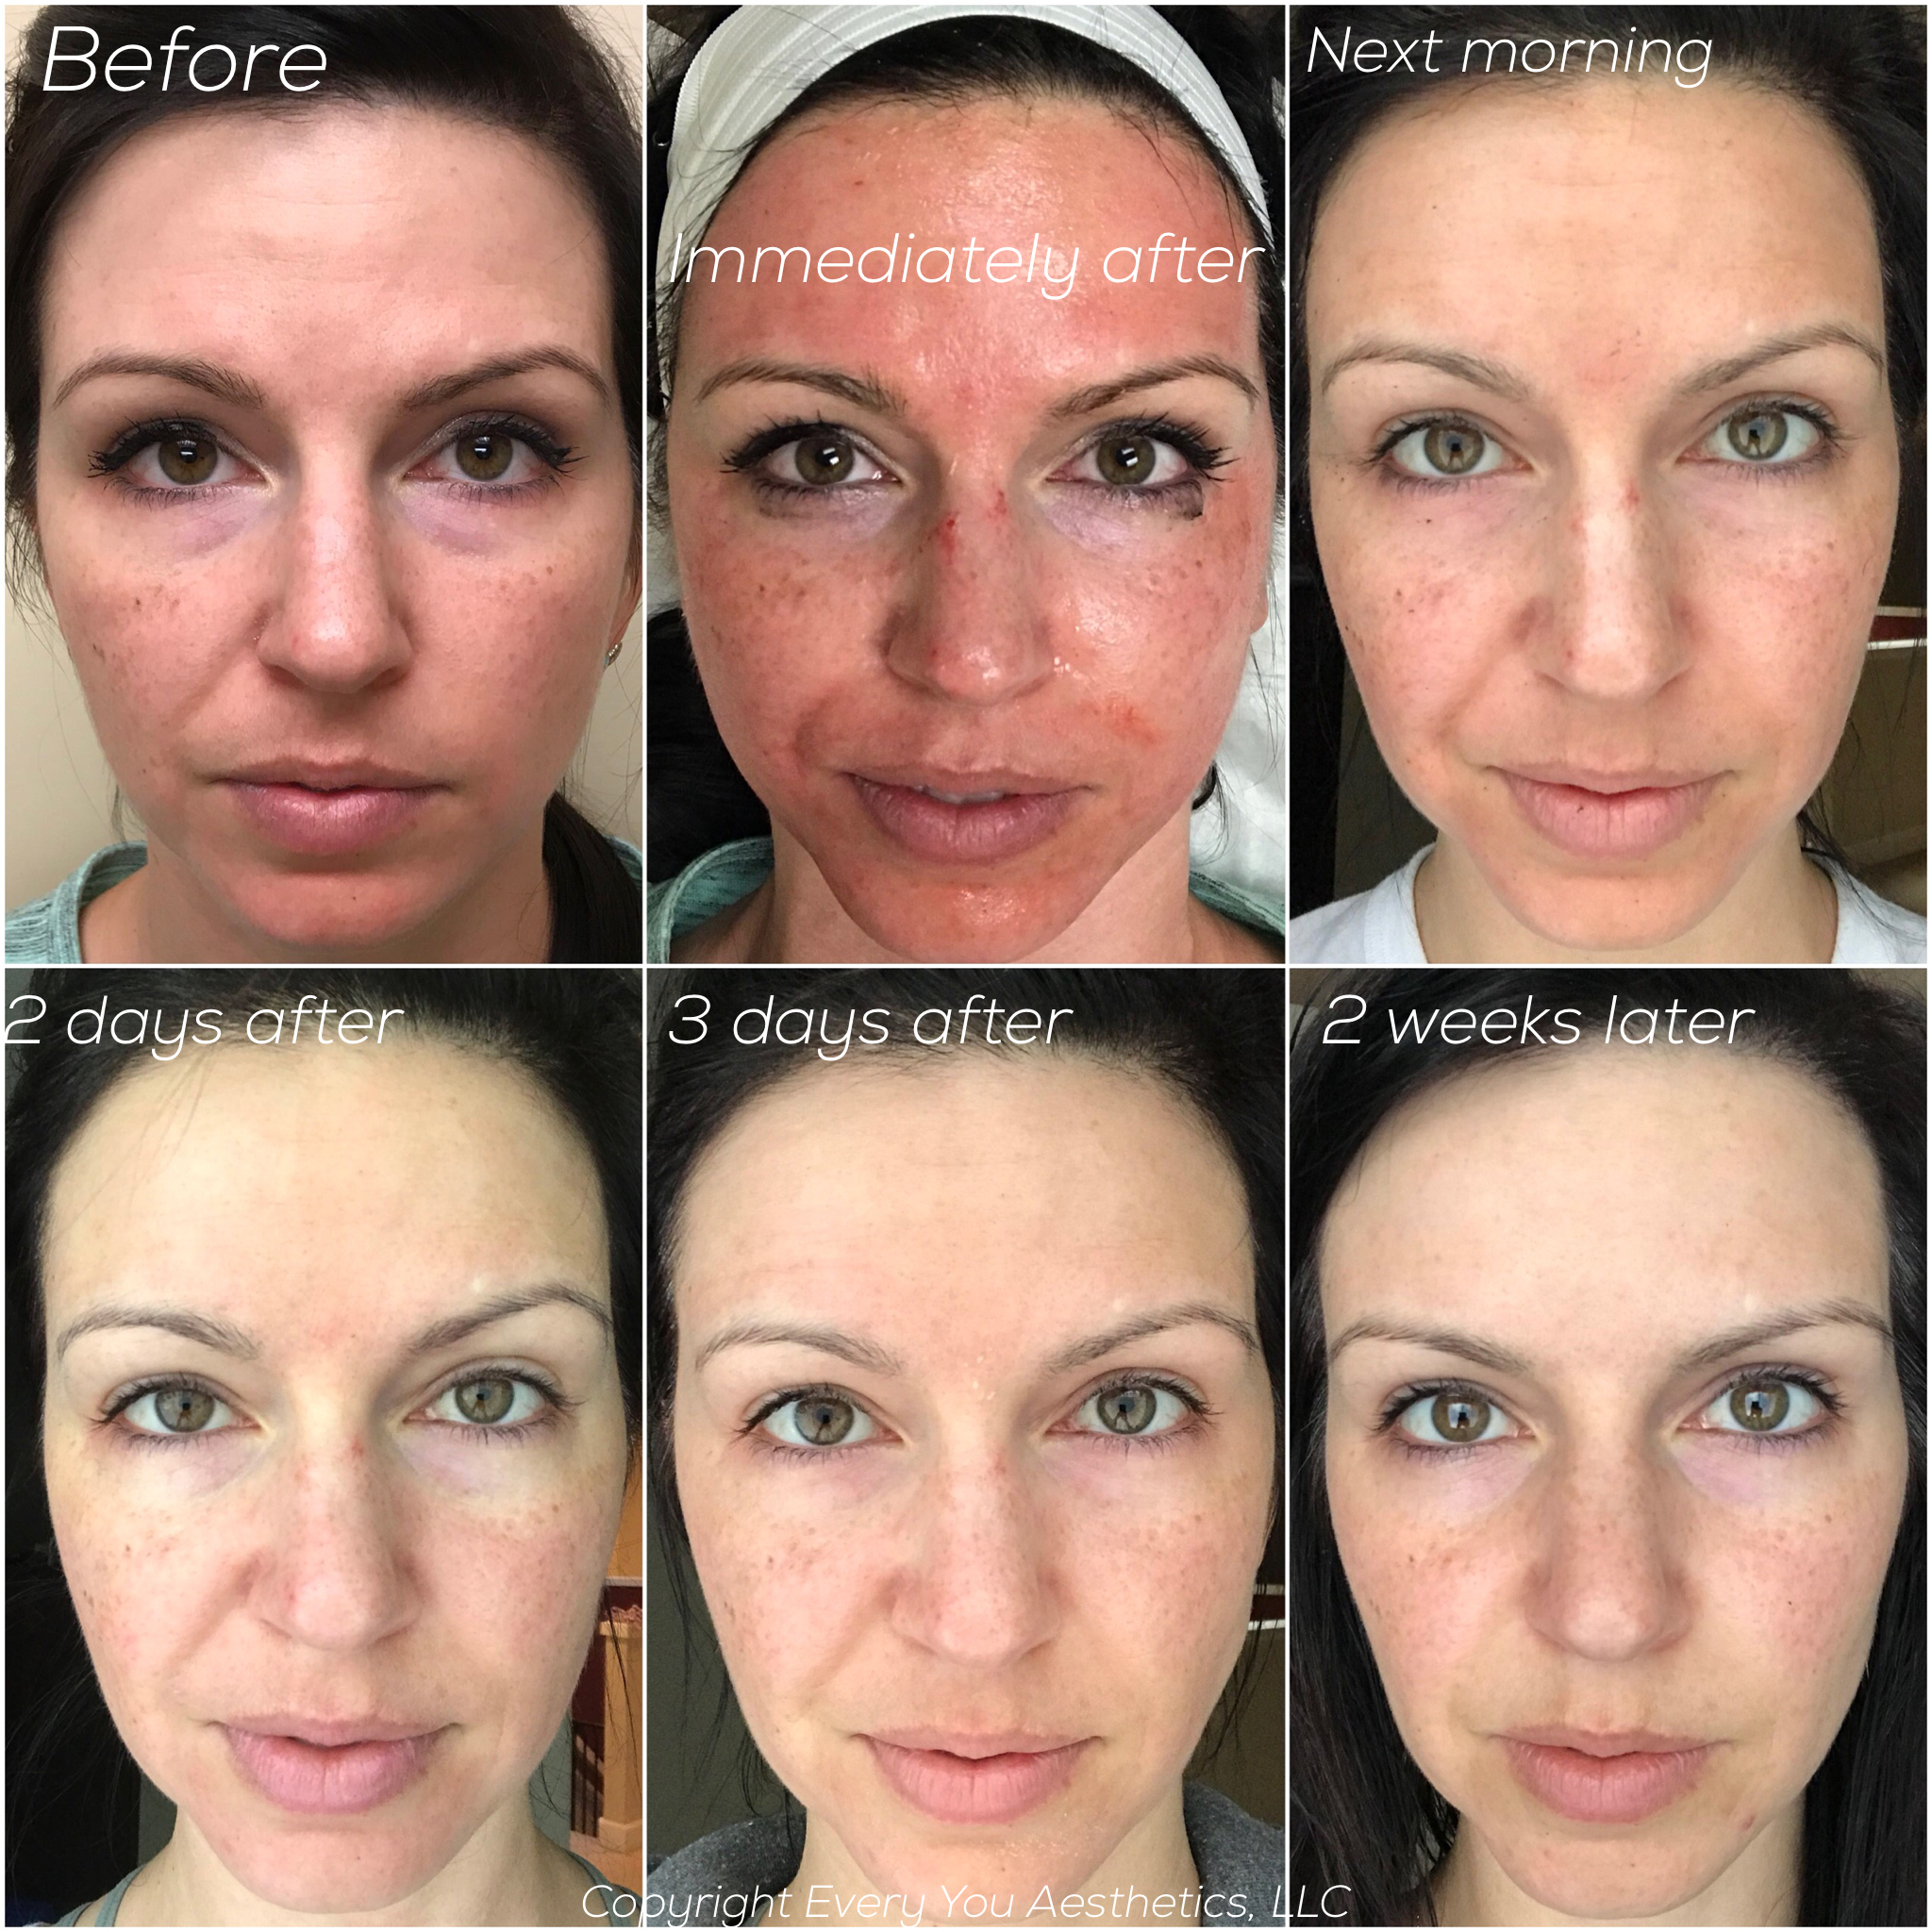 After first Microneedling Facial with PRP upgrade, 2 more still needed for full treatment. Notice improved under eye bags and smile lines, lightened sun spots, brighter skin.